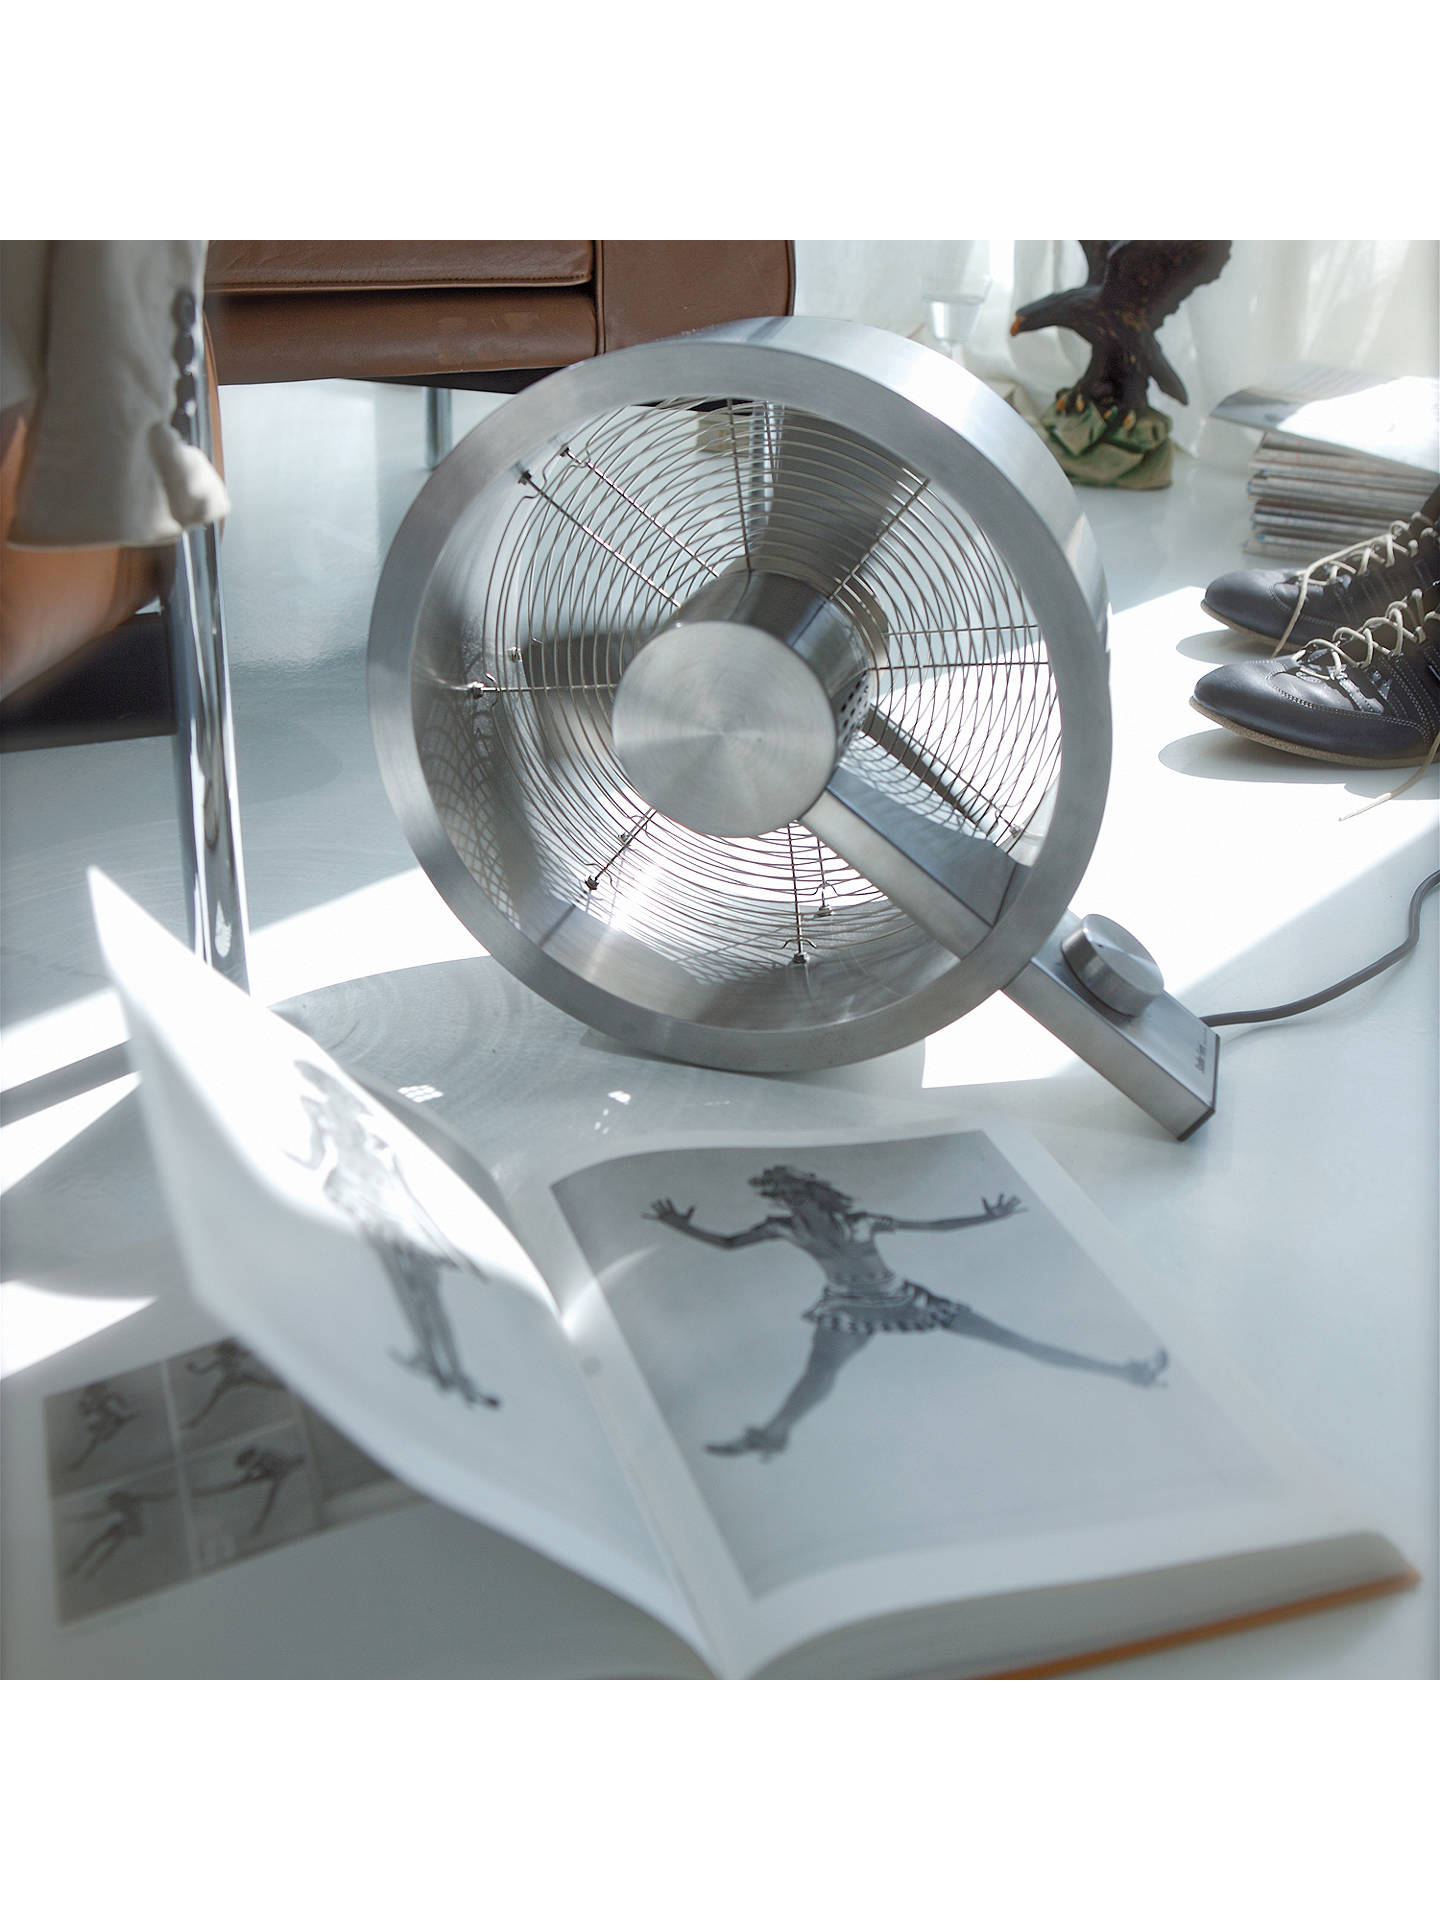 BuyStadler Form Q Fan, Silver Online at johnlewis.com